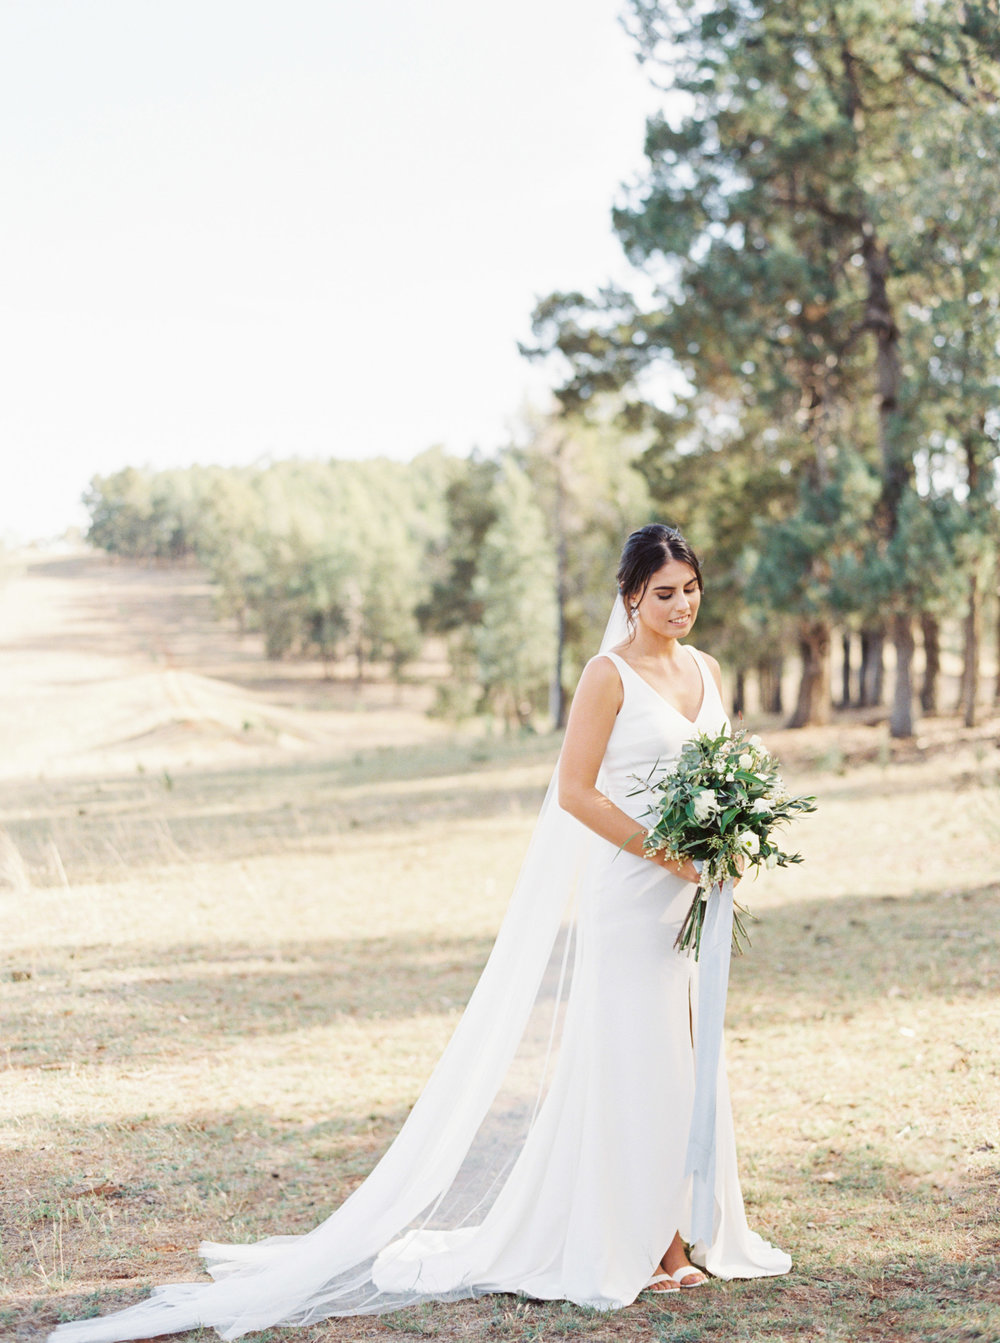 00045- Olive Tree Mediterranean Wedding in Mudgee NSW Australia Fine Art Film Wedding Lifestyle Photographer Sheri McMahon_.jpg